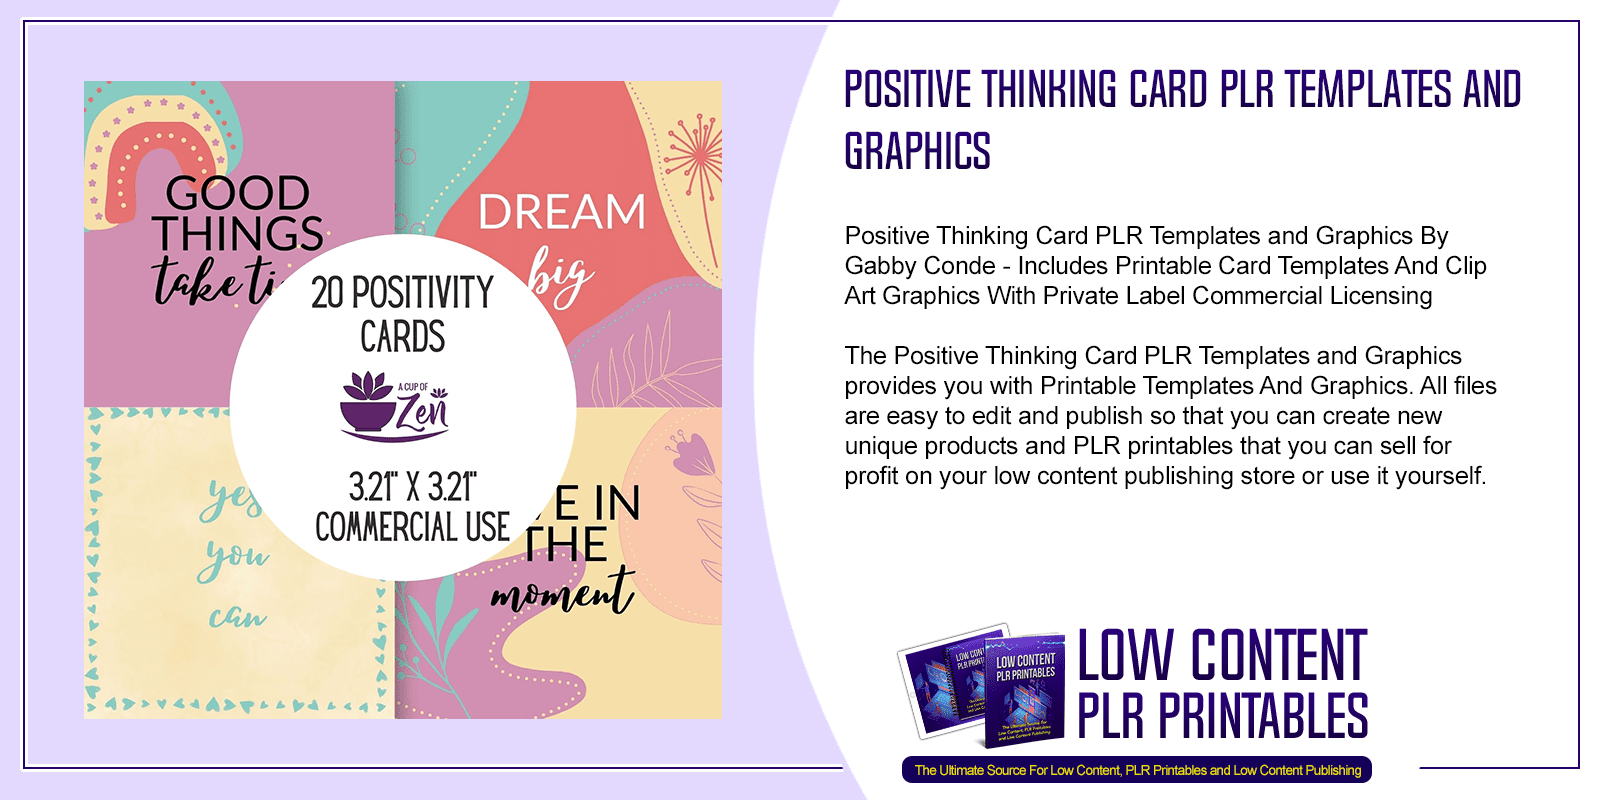 Positive Thinking Card PLR Templates and Graphics